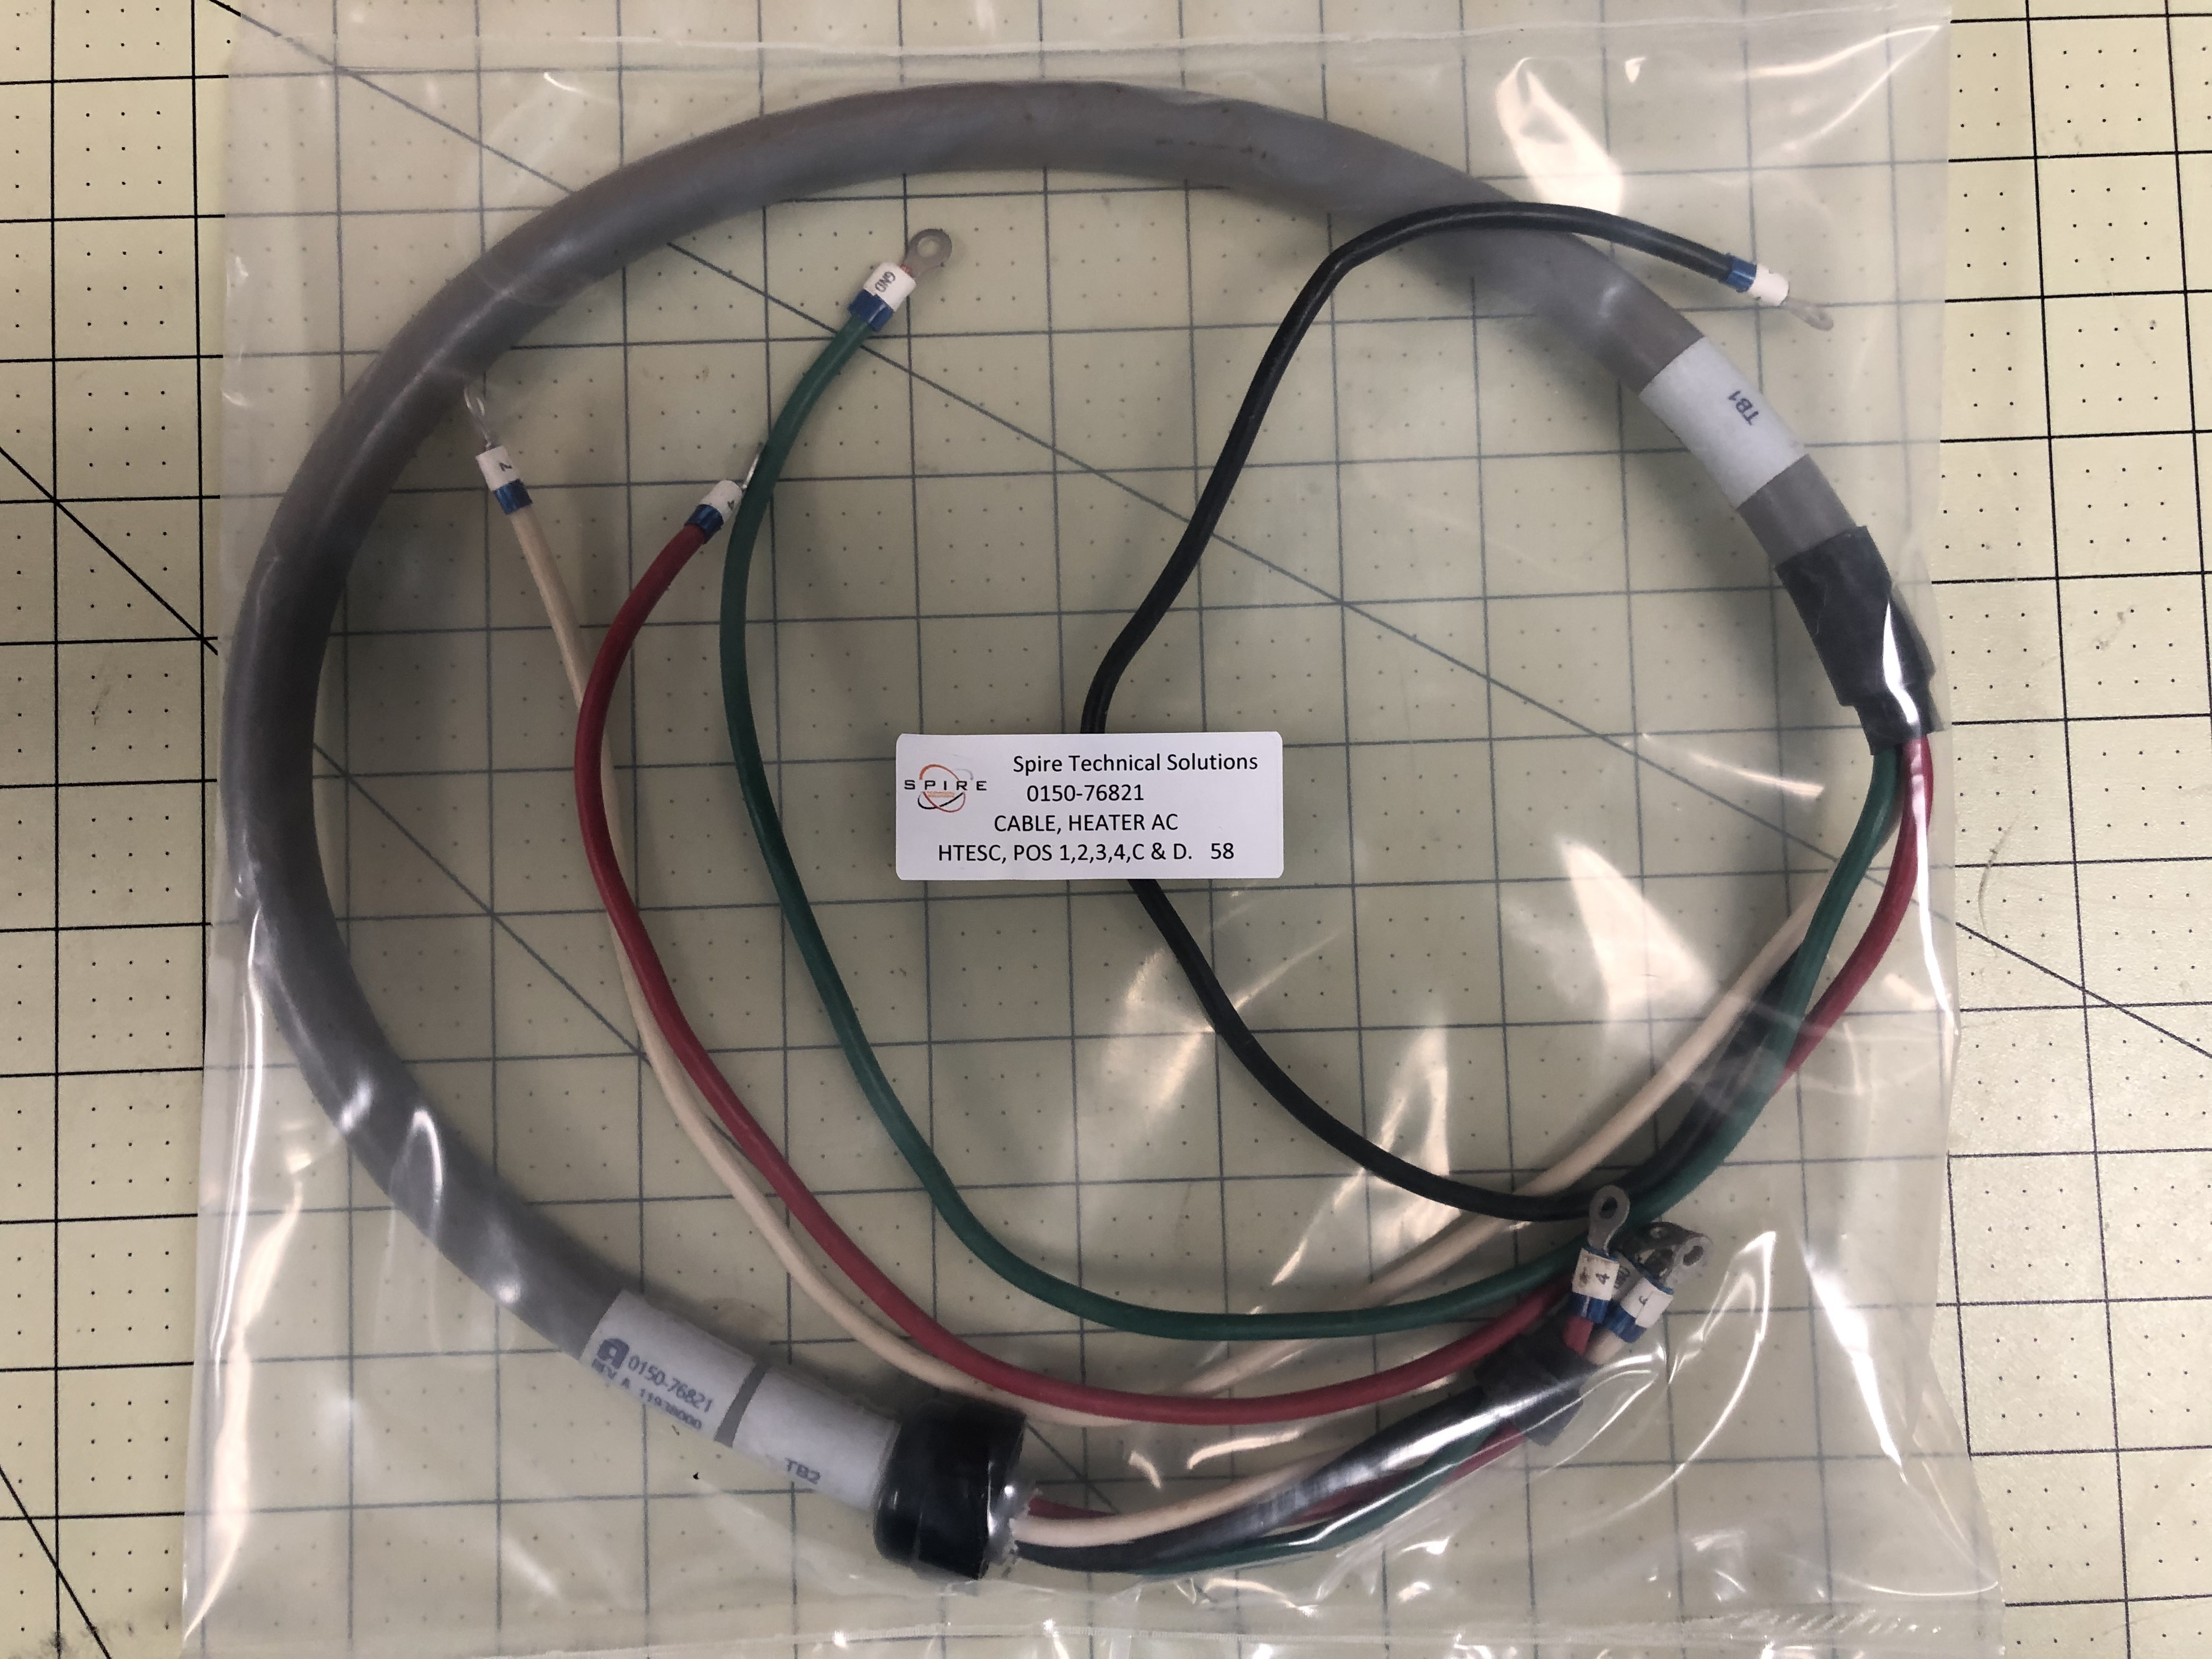 CABLE, HEATER AC, HTESC, POS 1, 2 3,4,C & D